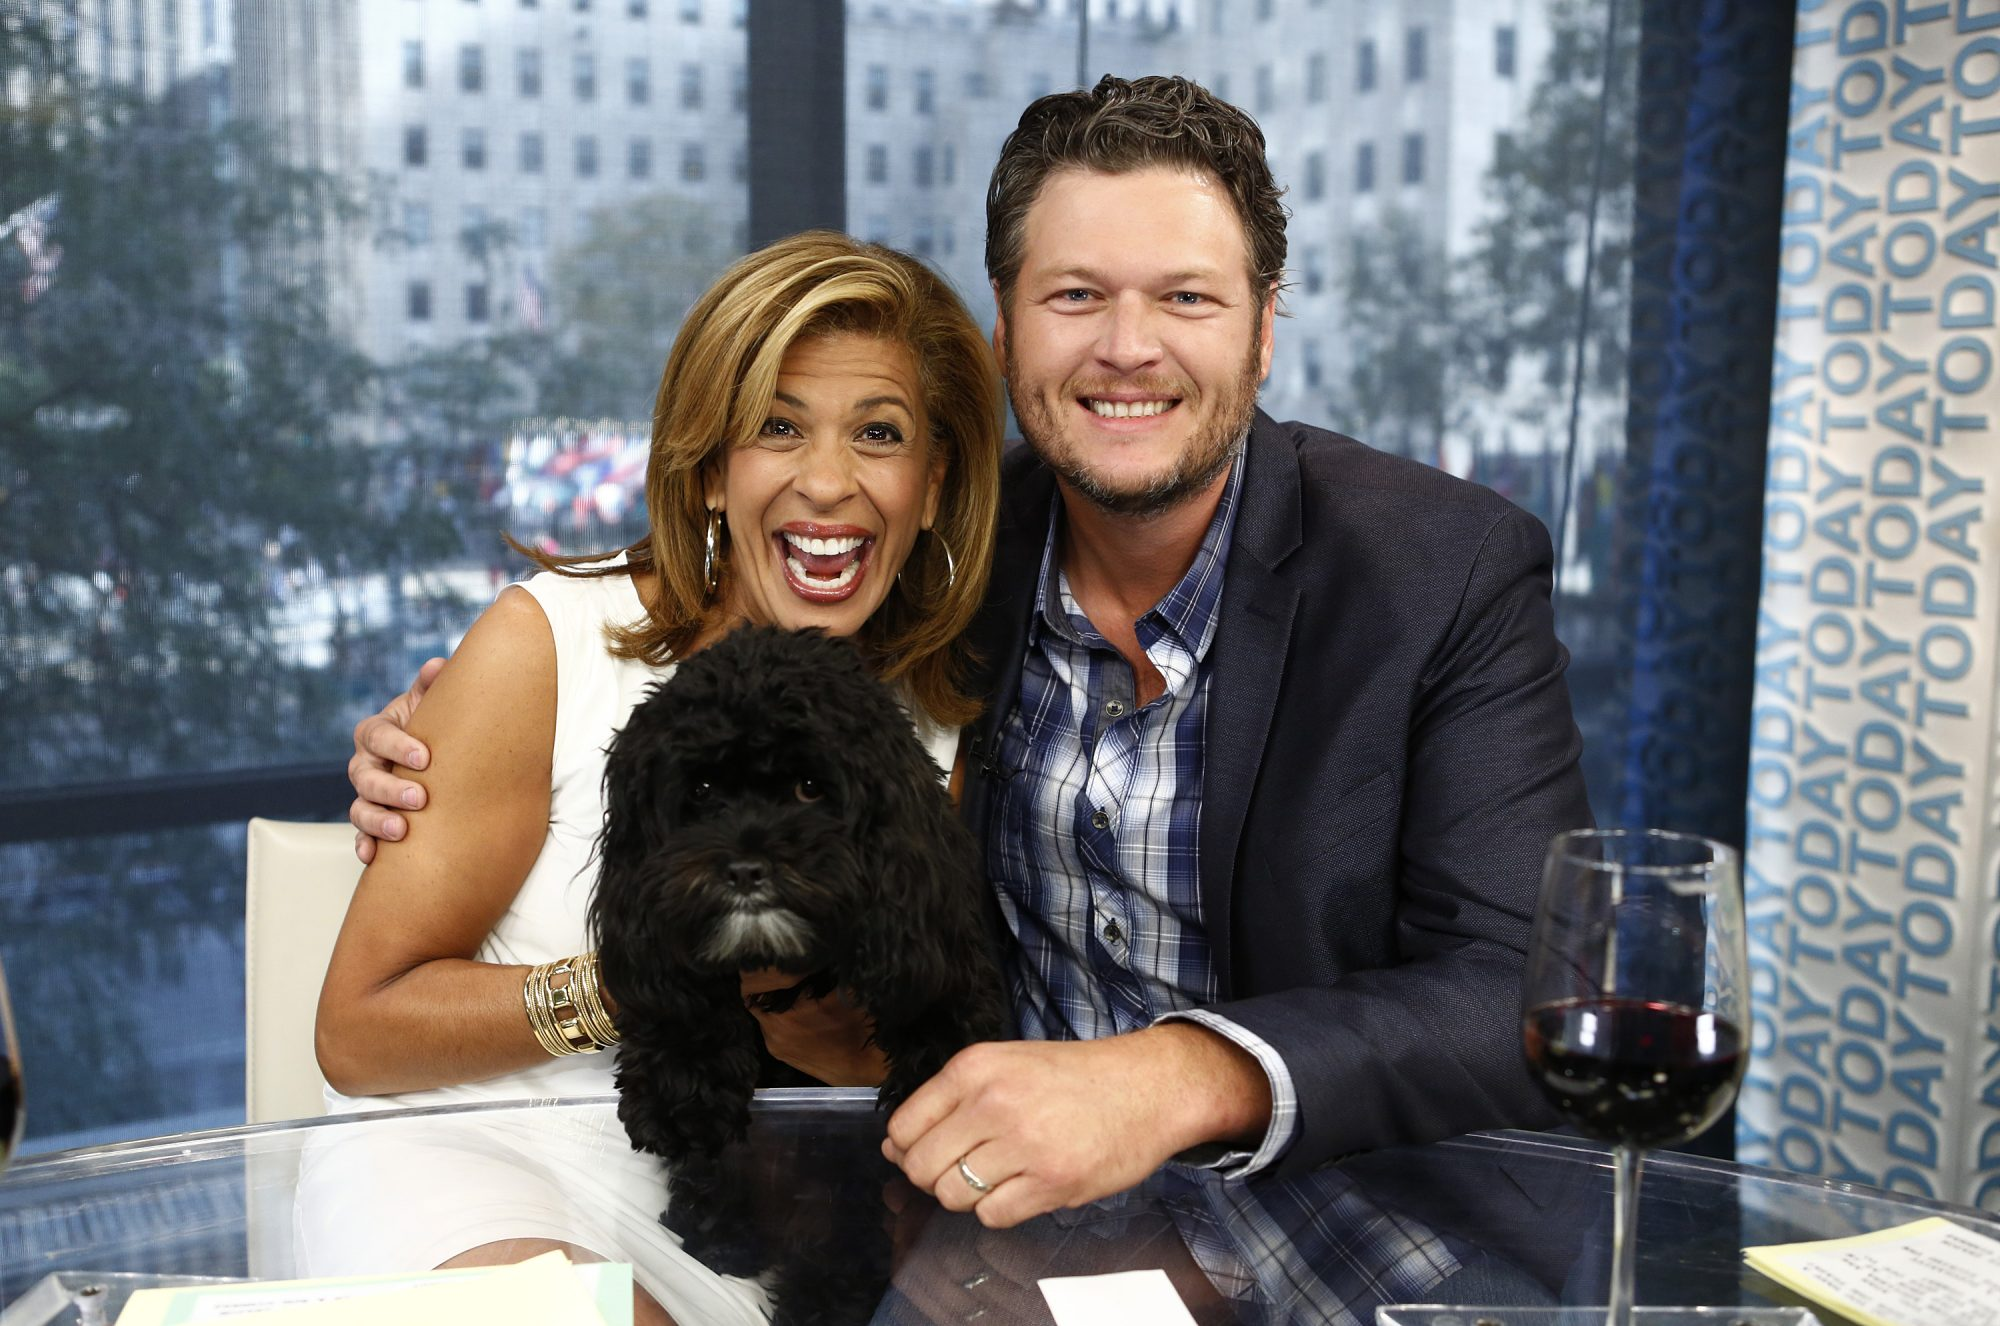 Hoda Kotb's adorable family is completed with a cute little dog named Blake, who is, yes, named after country music artist Blake Shelton.